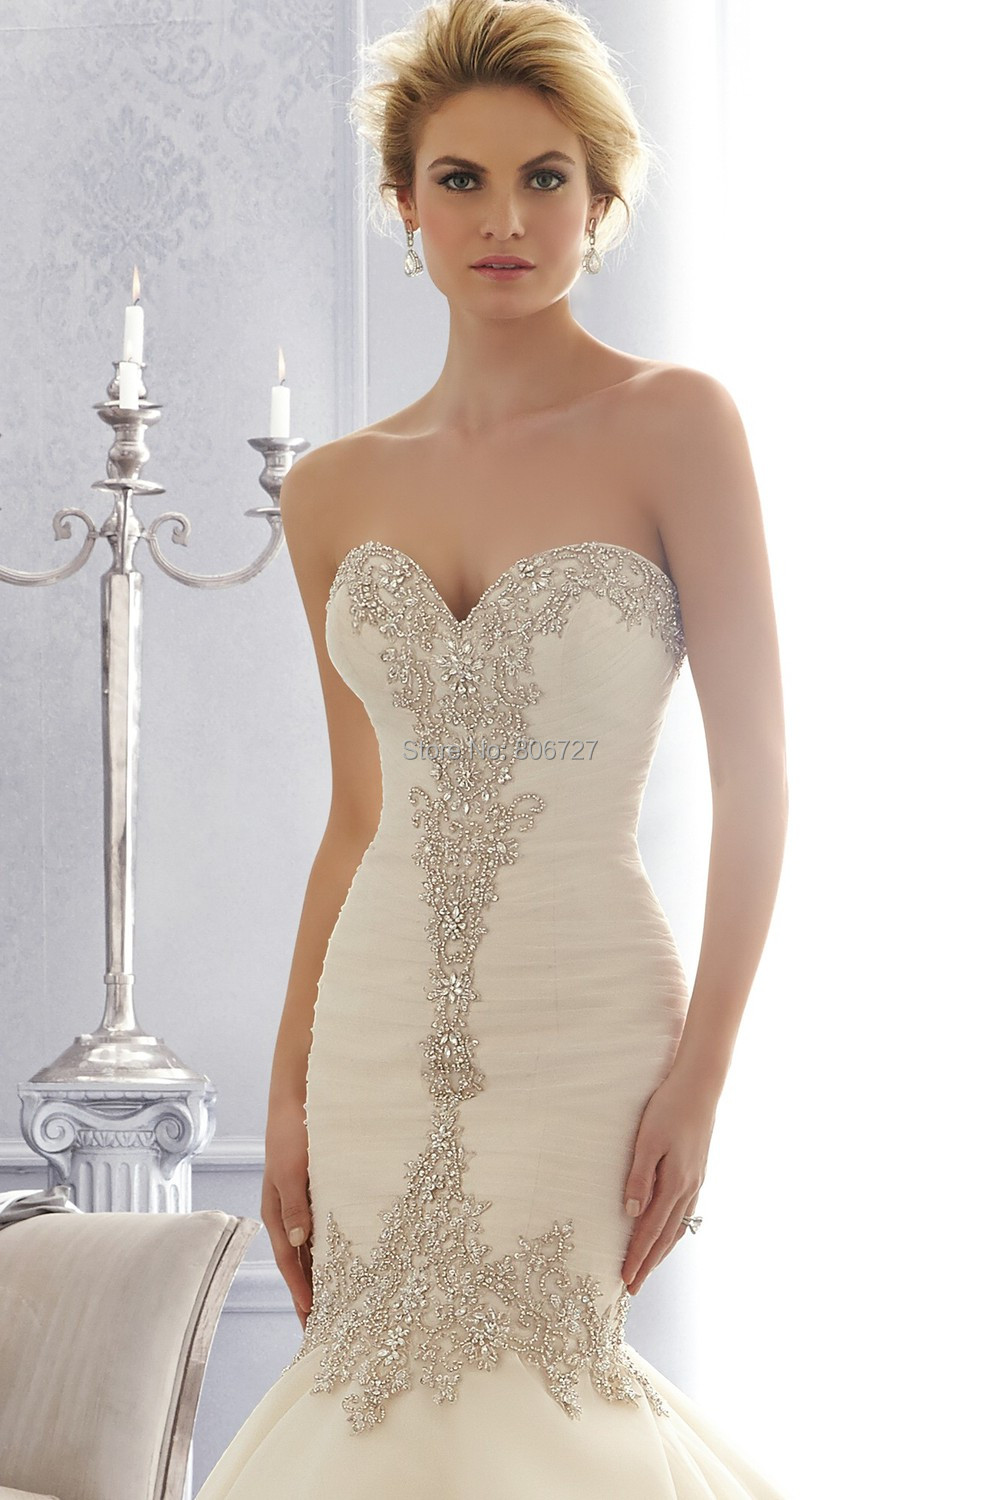 Mermaid Wedding Dresses With Sweetheart Neckline And Crystals ...